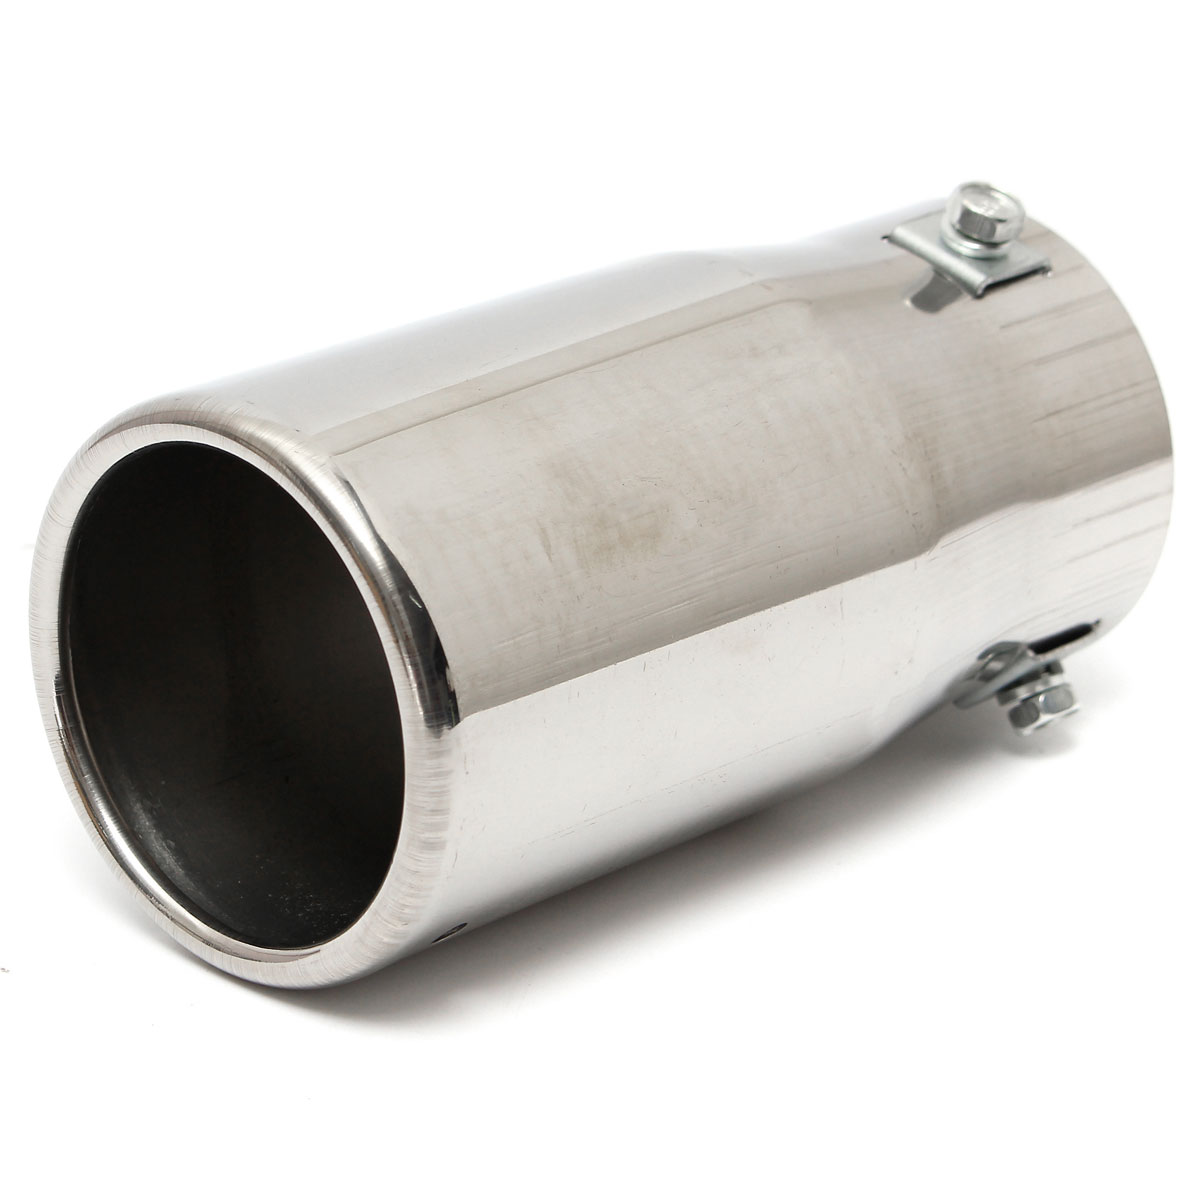 universal stainless steel car auto exhaust tail pipe tip. Black Bedroom Furniture Sets. Home Design Ideas